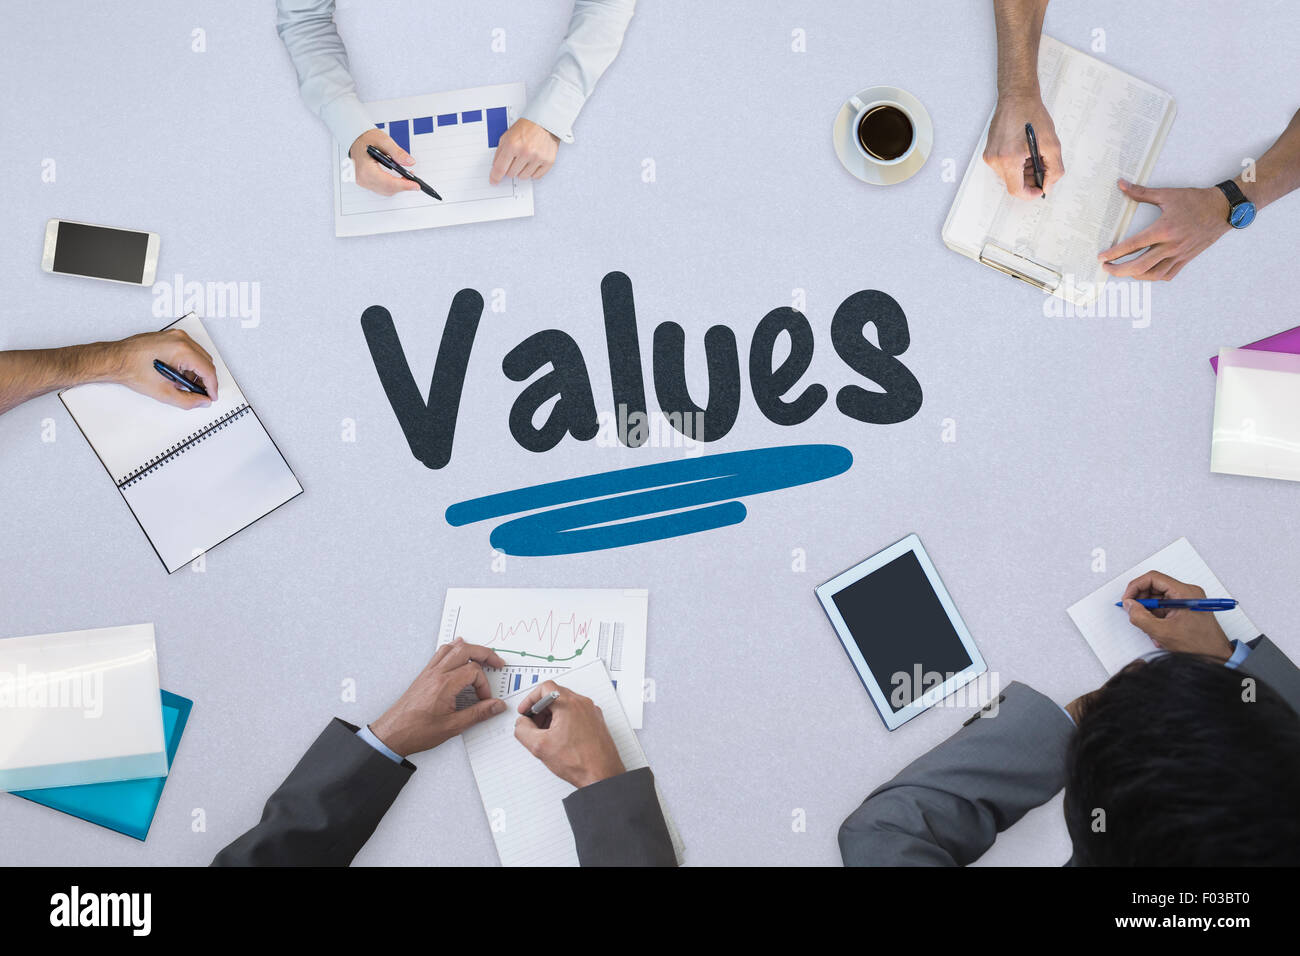 Values against business meeting - Stock Image